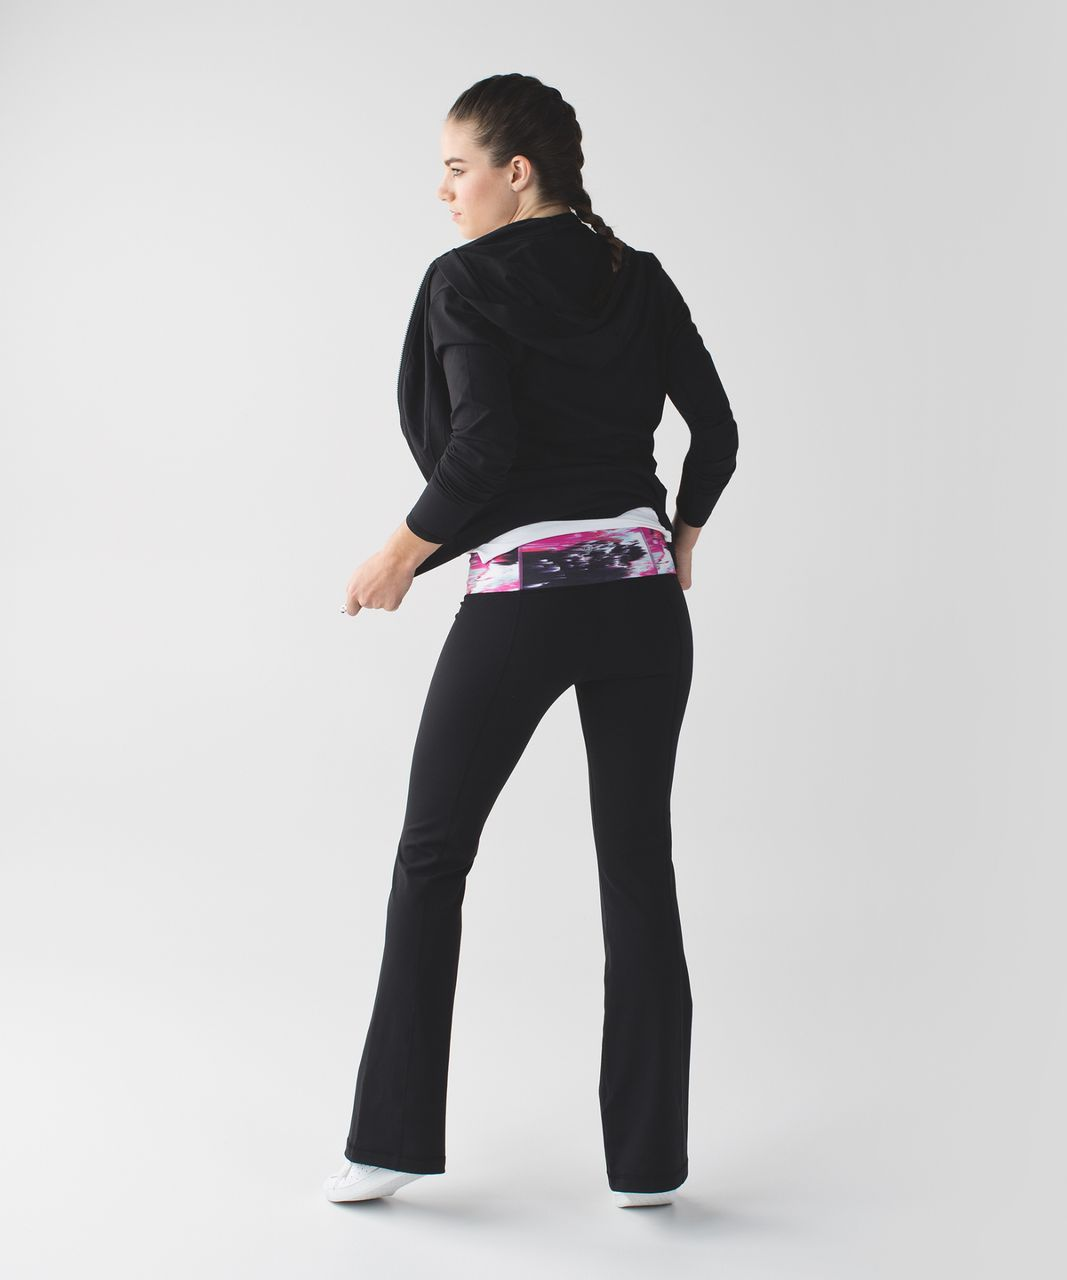 Lululemon Groove Pant III (Tall) - Black / Pigment Wind White Multi